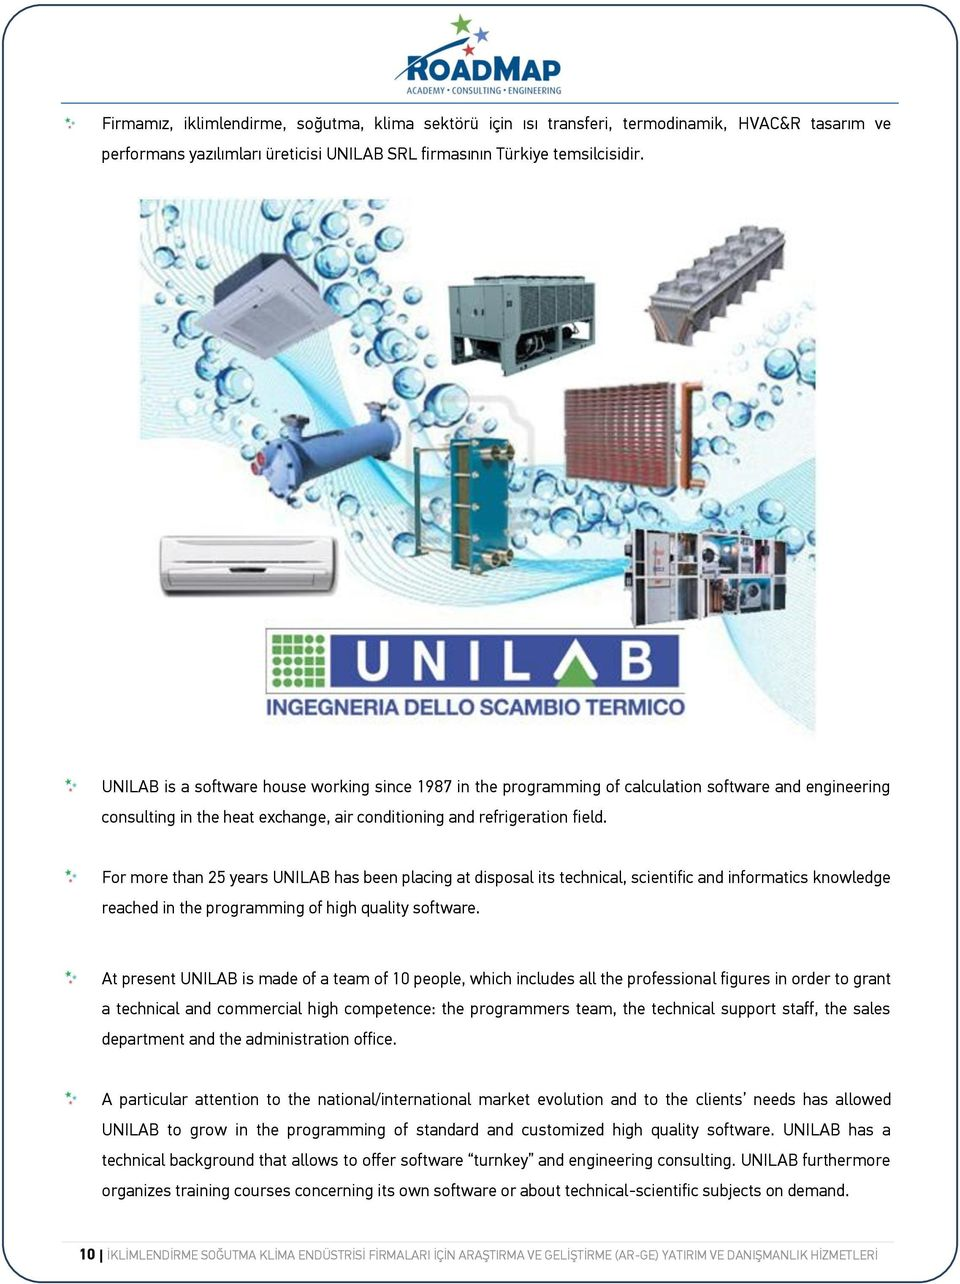 For more than 25 years UNILAB has been placing at disposal its technical, scientific and informatics knowledge reached in the programming of high quality software.